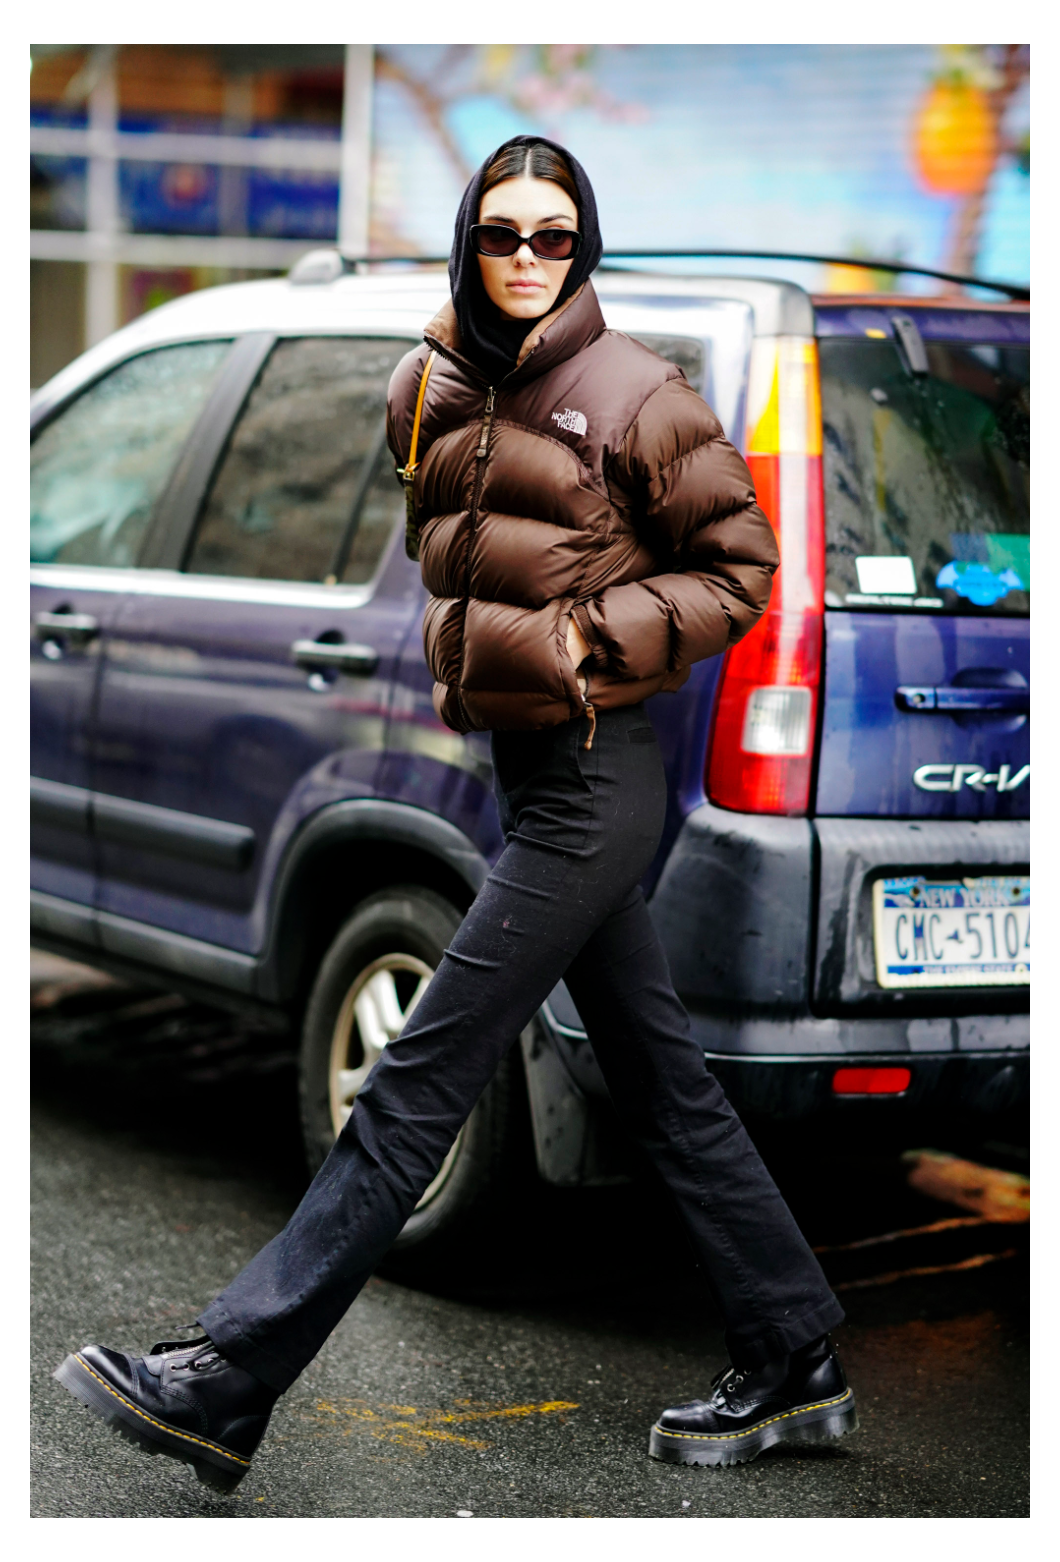 Kendall Jenner Wears Dr Martens Boots While Shopping In Nyc North Face Jacket Fuz North Face Jacket Outfit Kendall Jenner Outfits North Face Puffer Jacket [ 1562 x 1060 Pixel ]